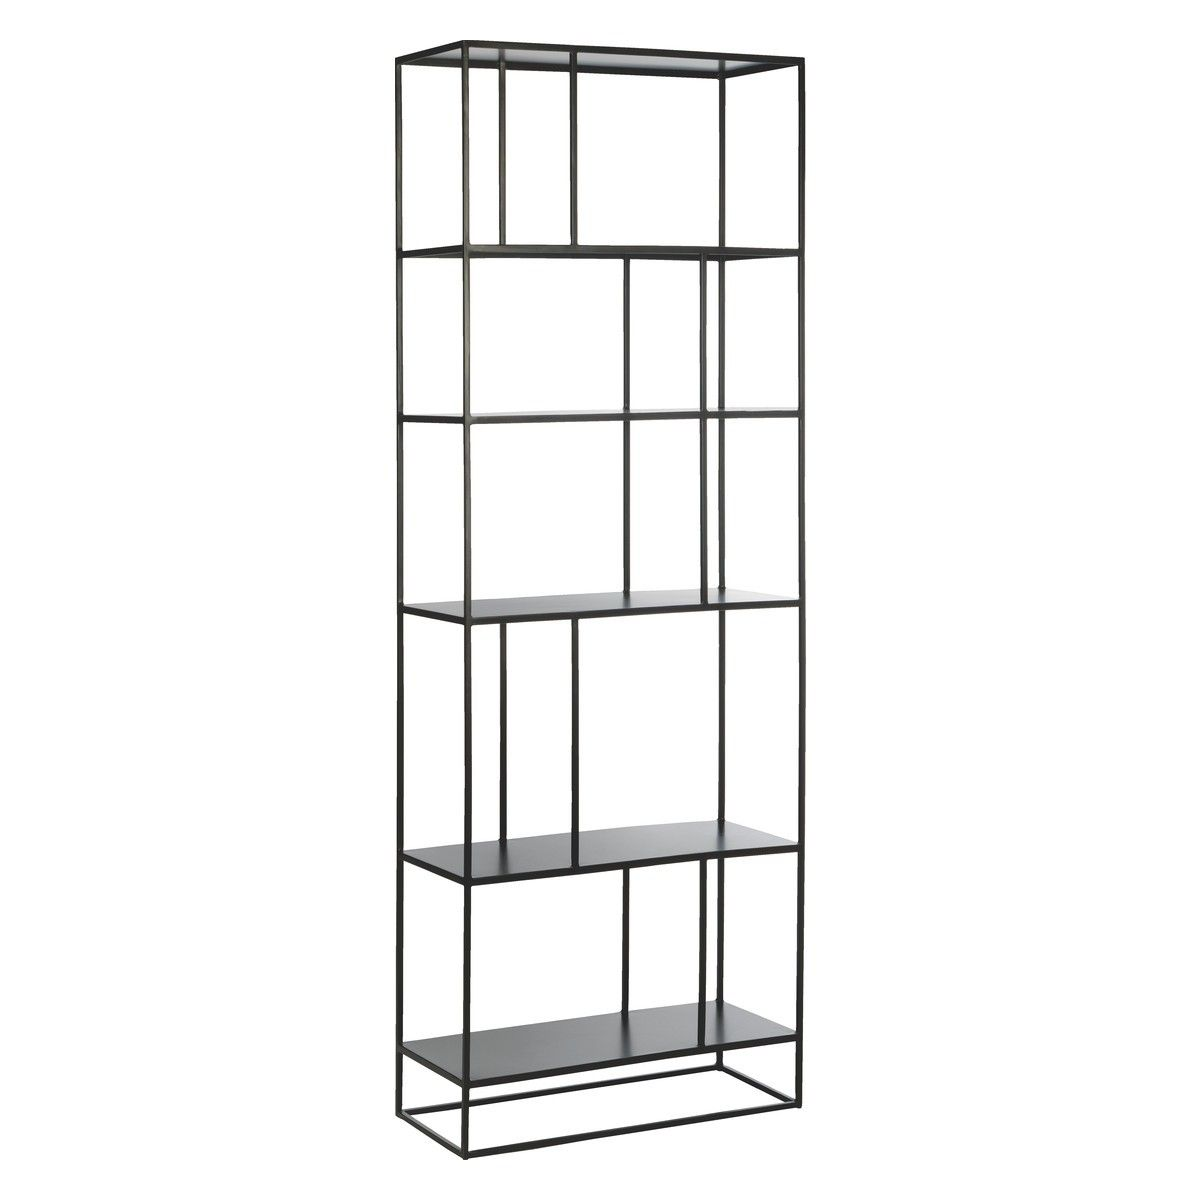 Aluminum Bookcase Calvo Black Metal Bookcase Buy Now At Habitat Uk